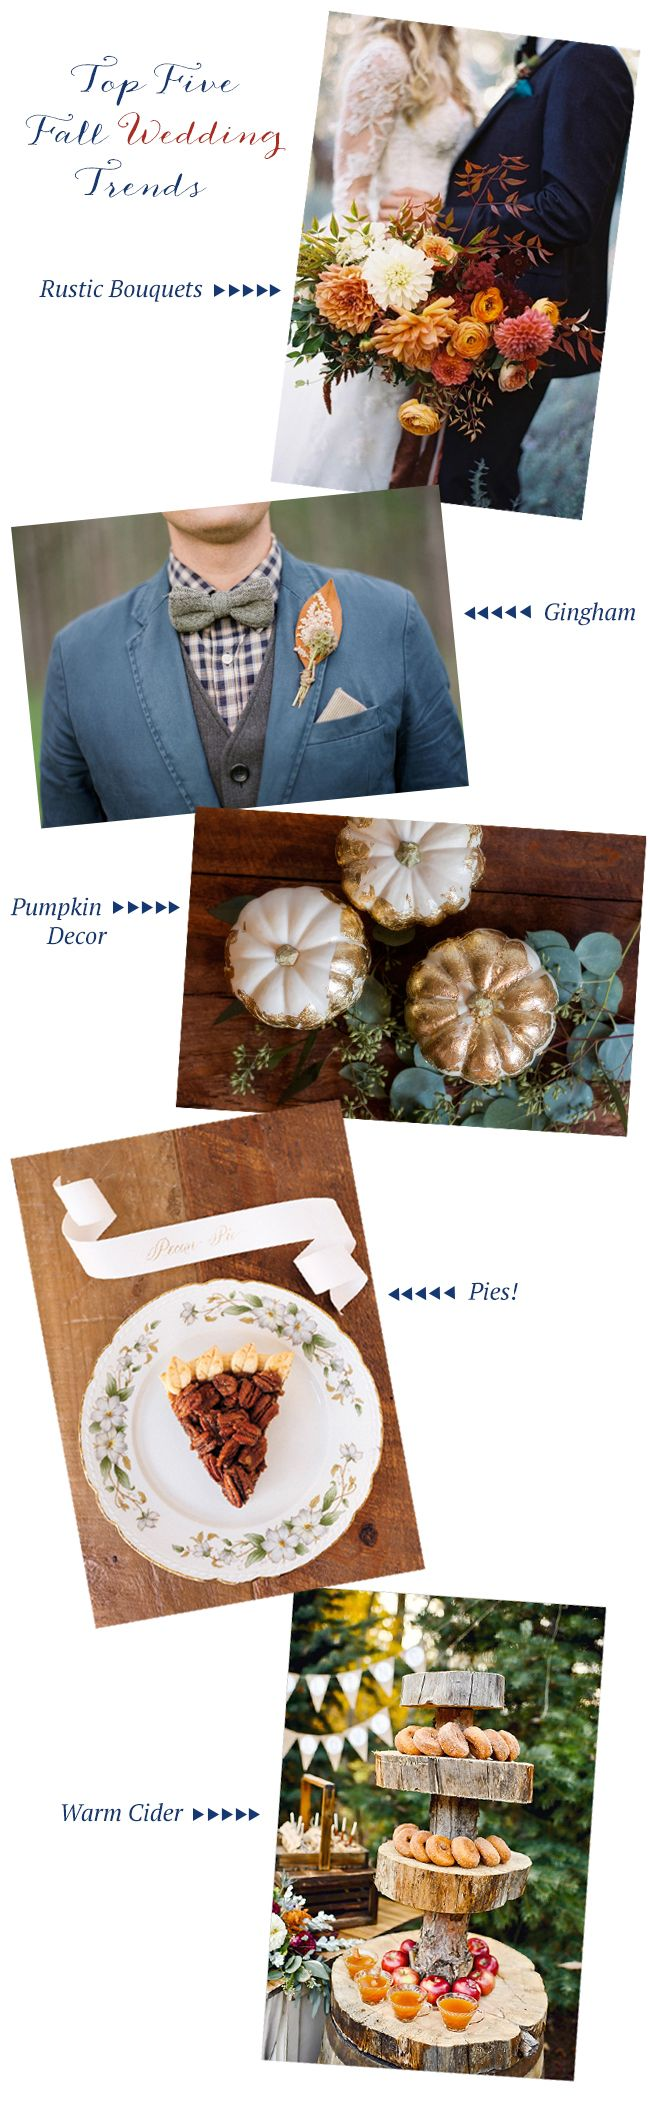 Wedding decorations teal and purple october 2018  best Fall Wedding Trends  Sugar Creek images on Pinterest